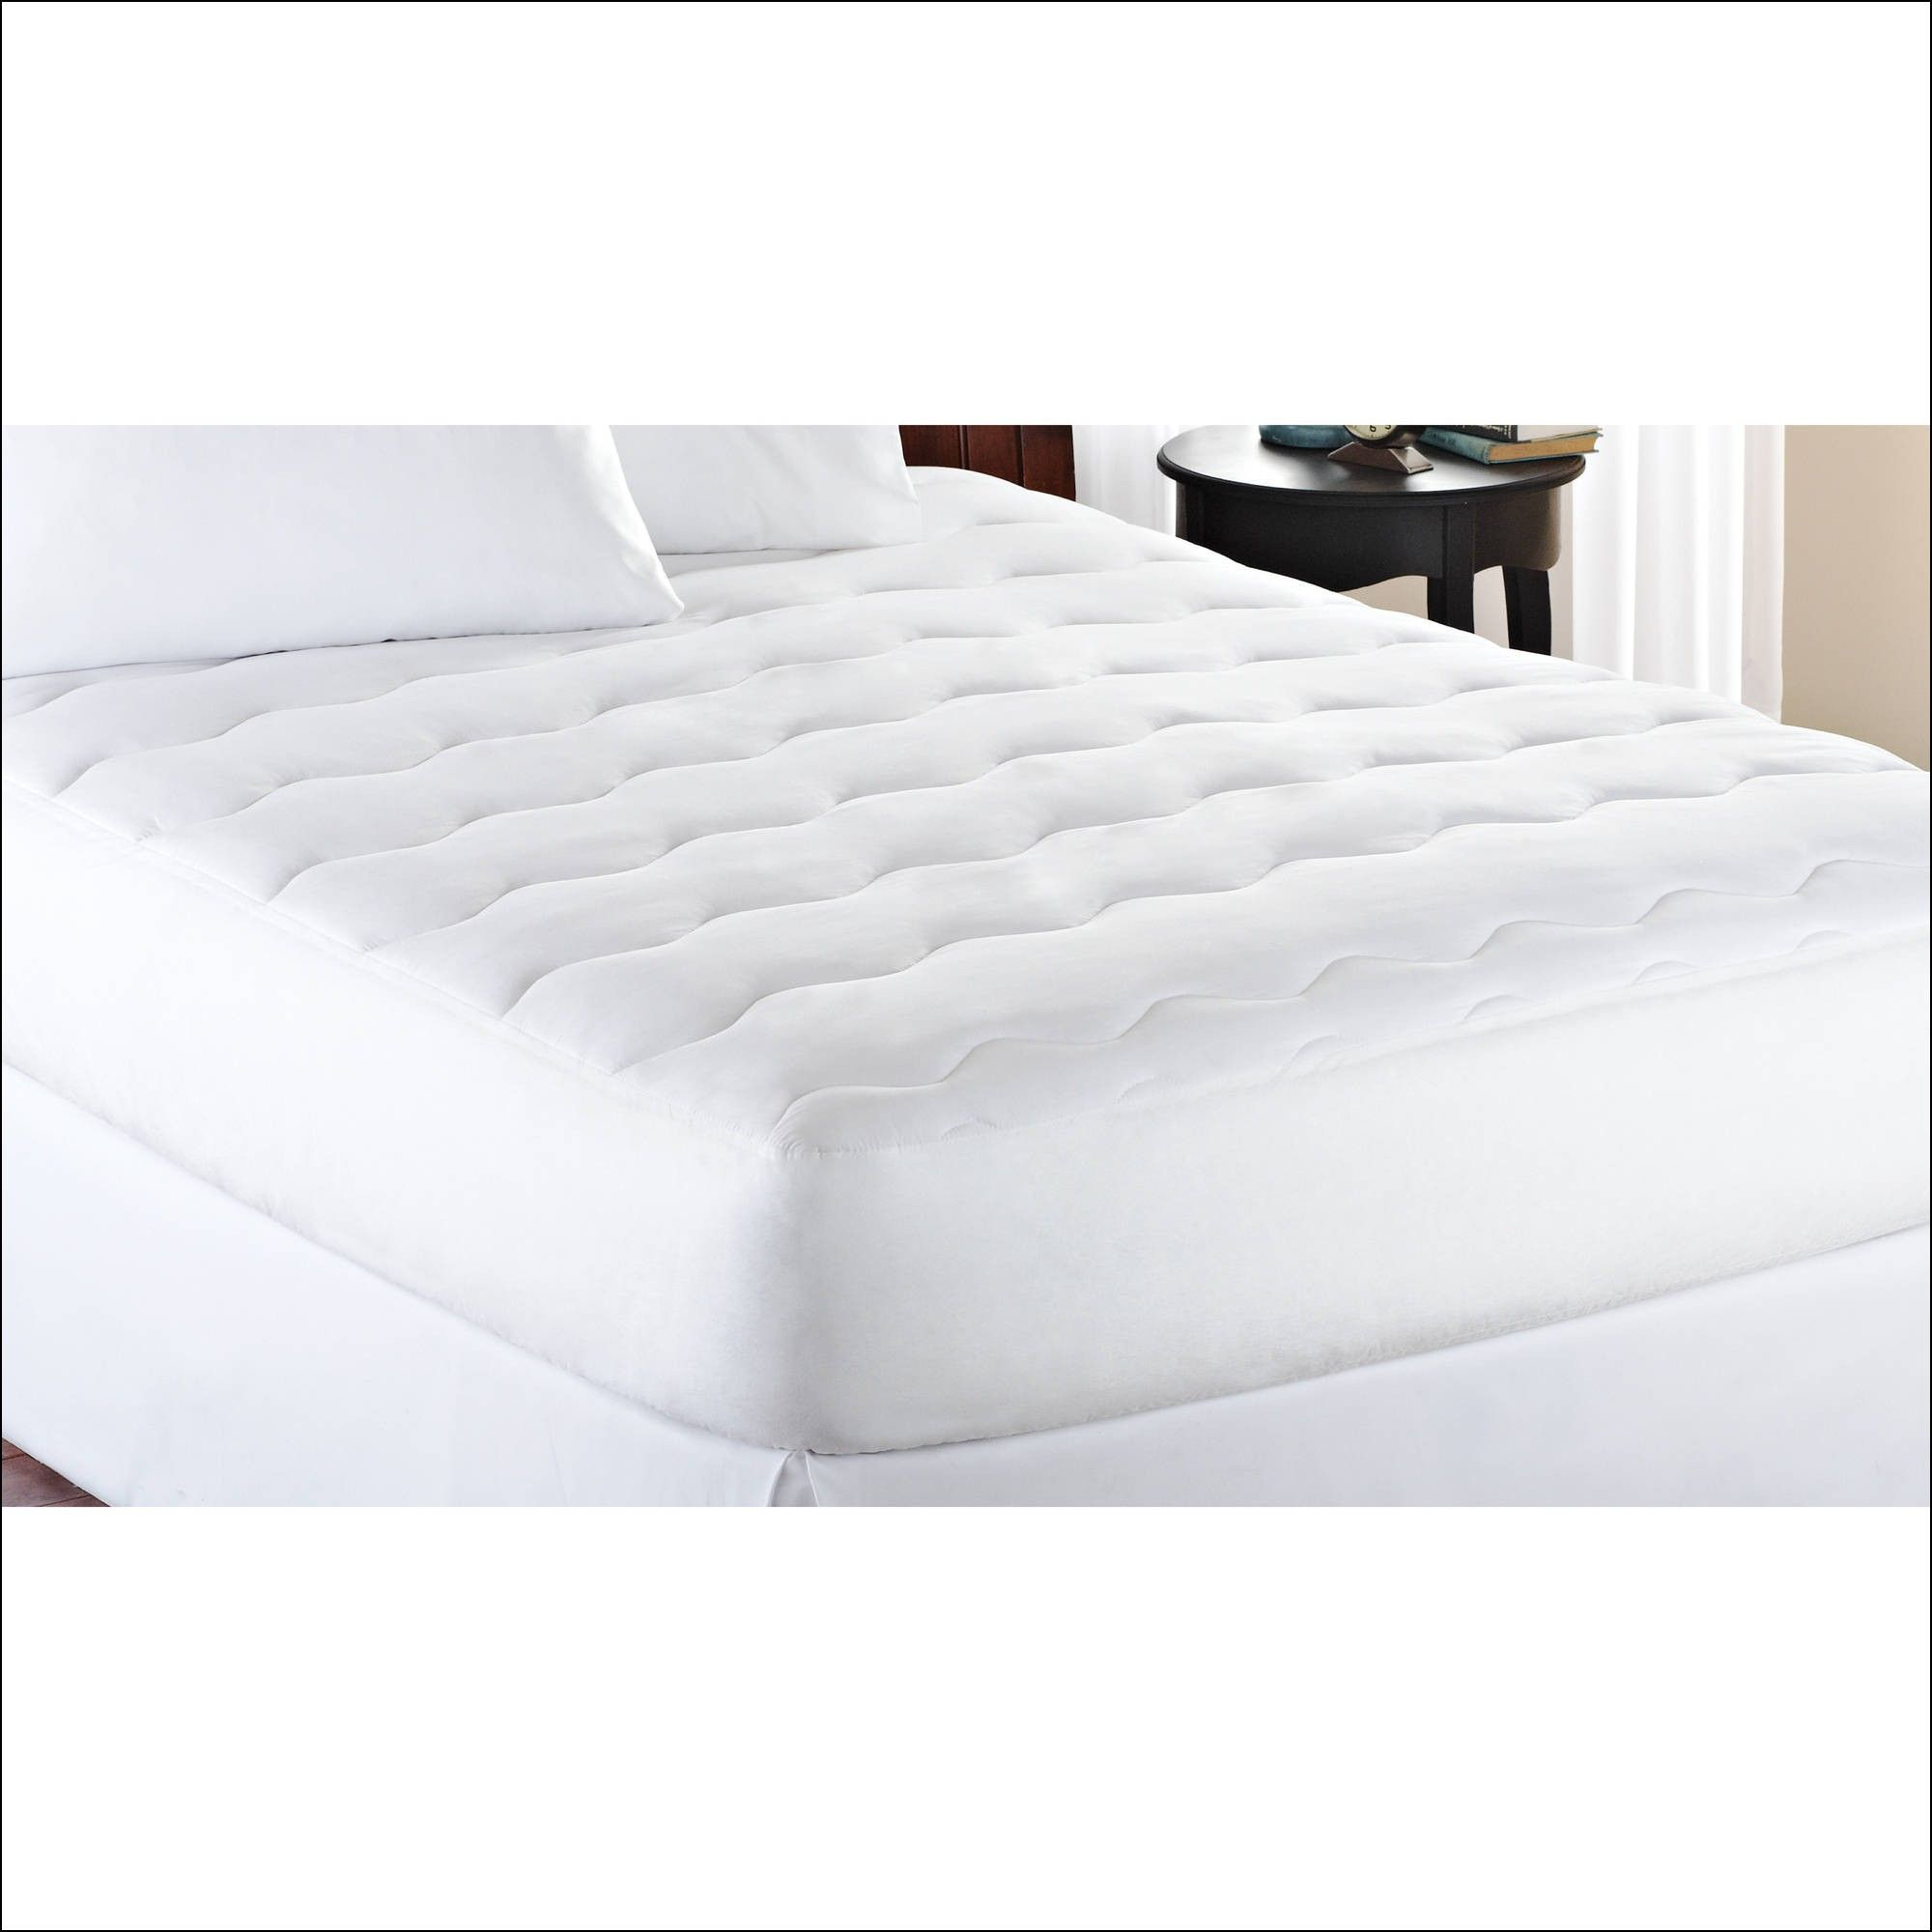 plan bee pillow benefits you gallery get of the topper top cushion with mattress home can